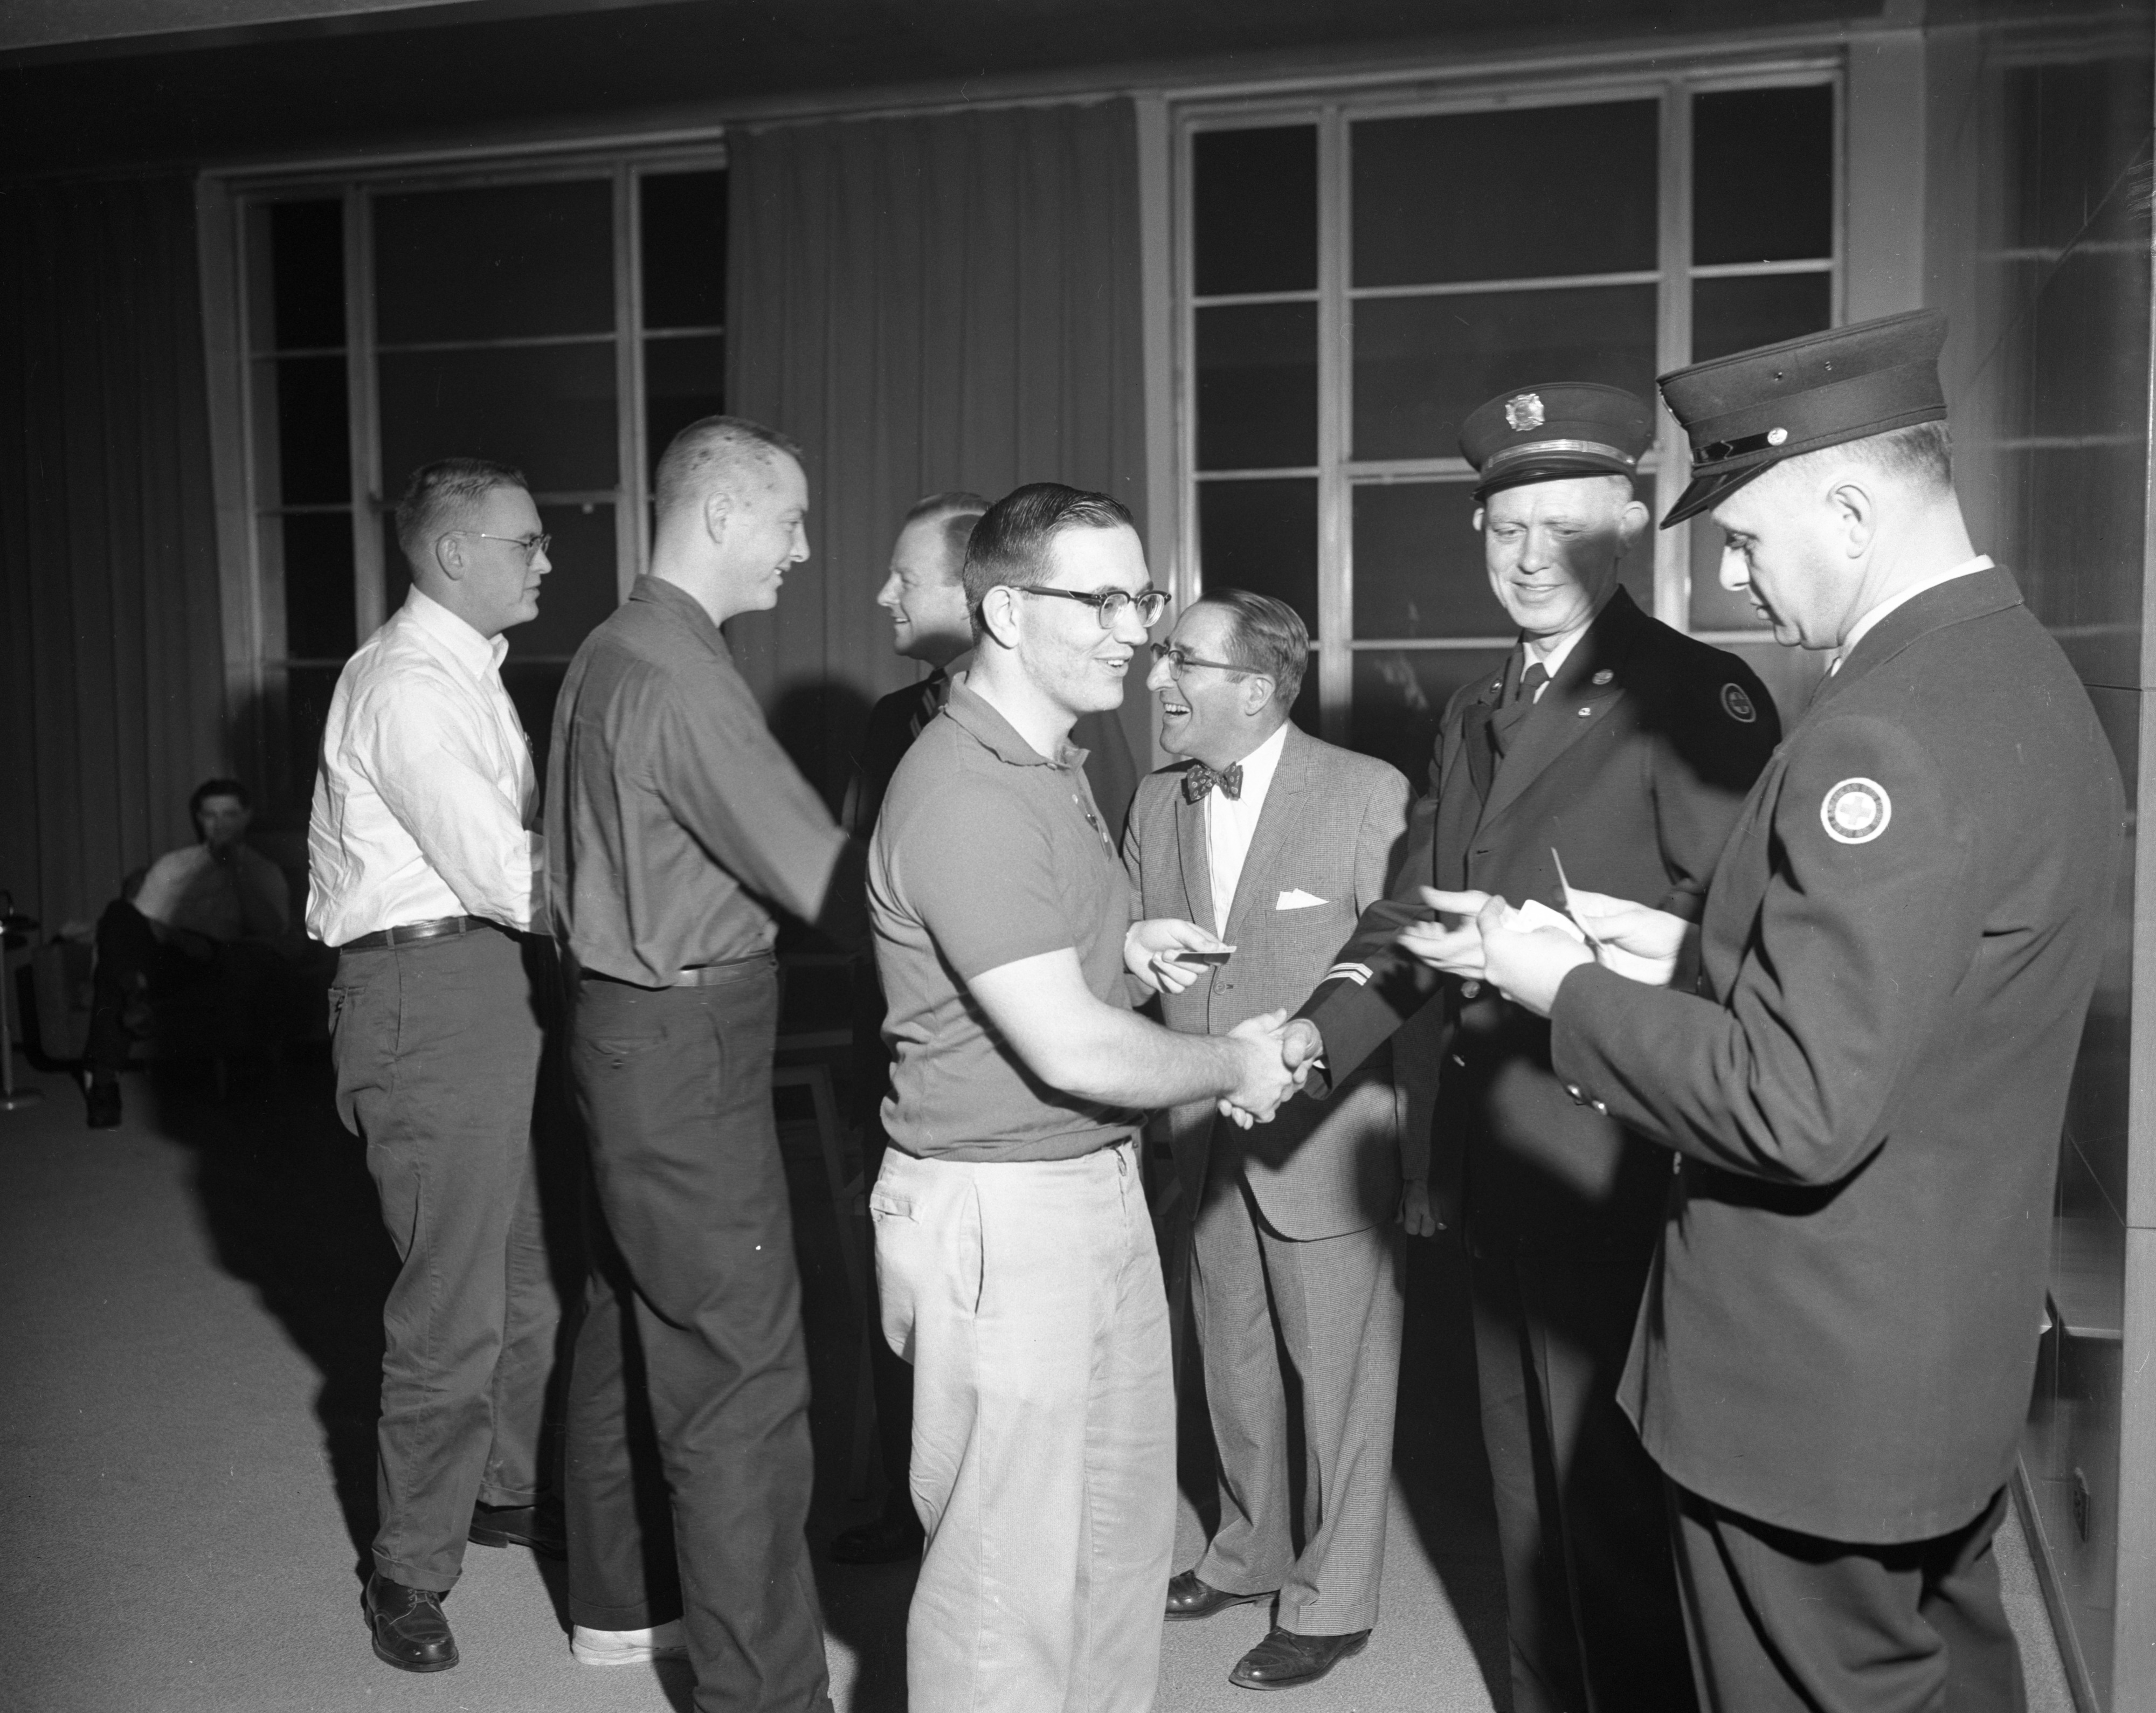 Peace Corps members complete an American Red Cross first aid class, January 1962 image